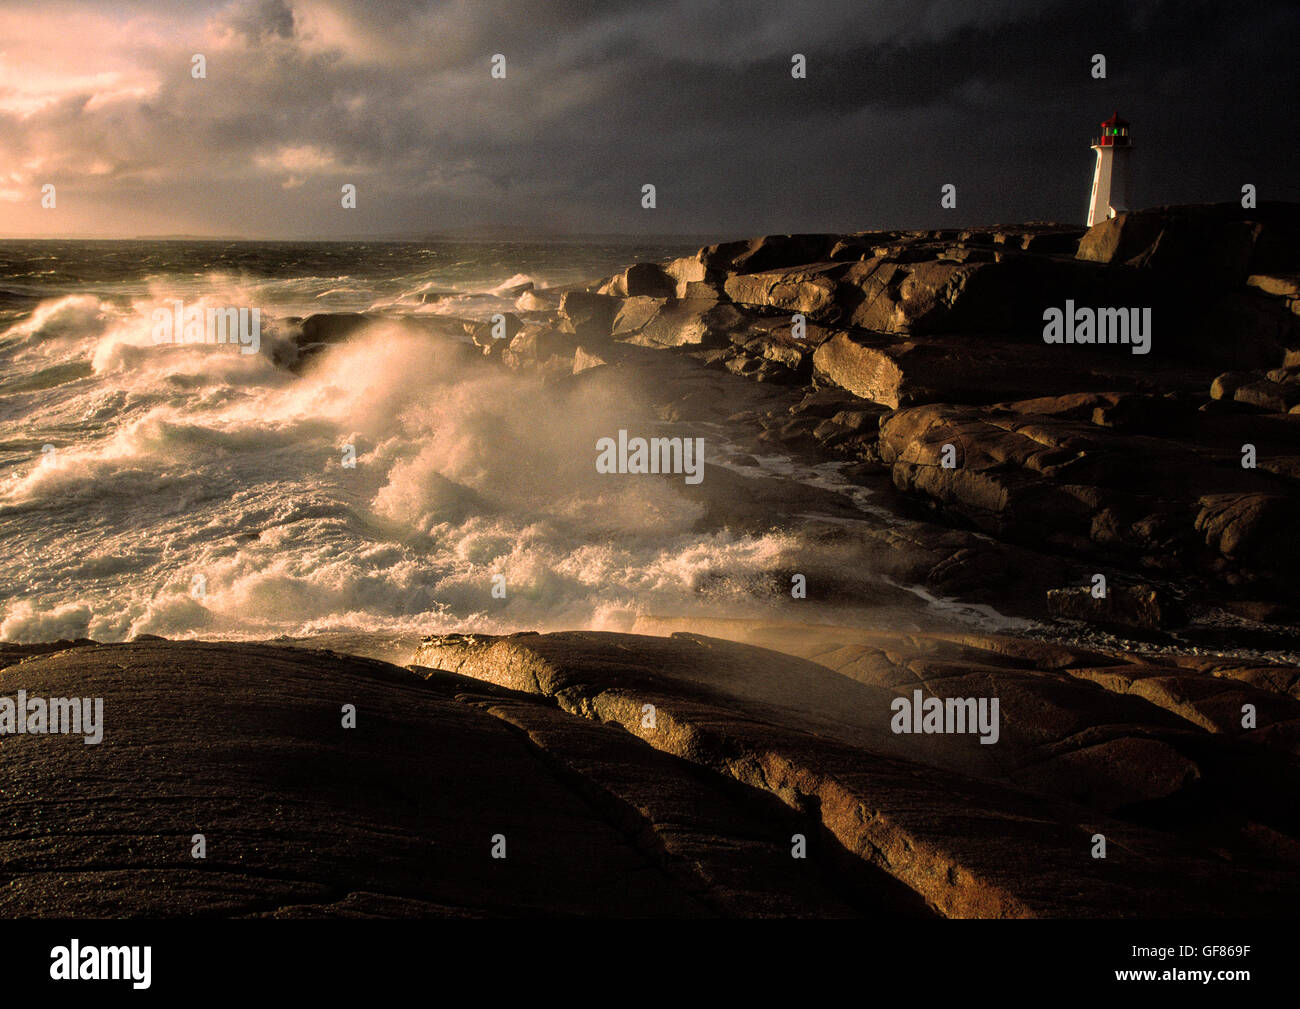 Peggy's Peggy Peggys Peggies Point Cove Lighthouse during a raging storm, Nova Scotia, Canada Stock Photo